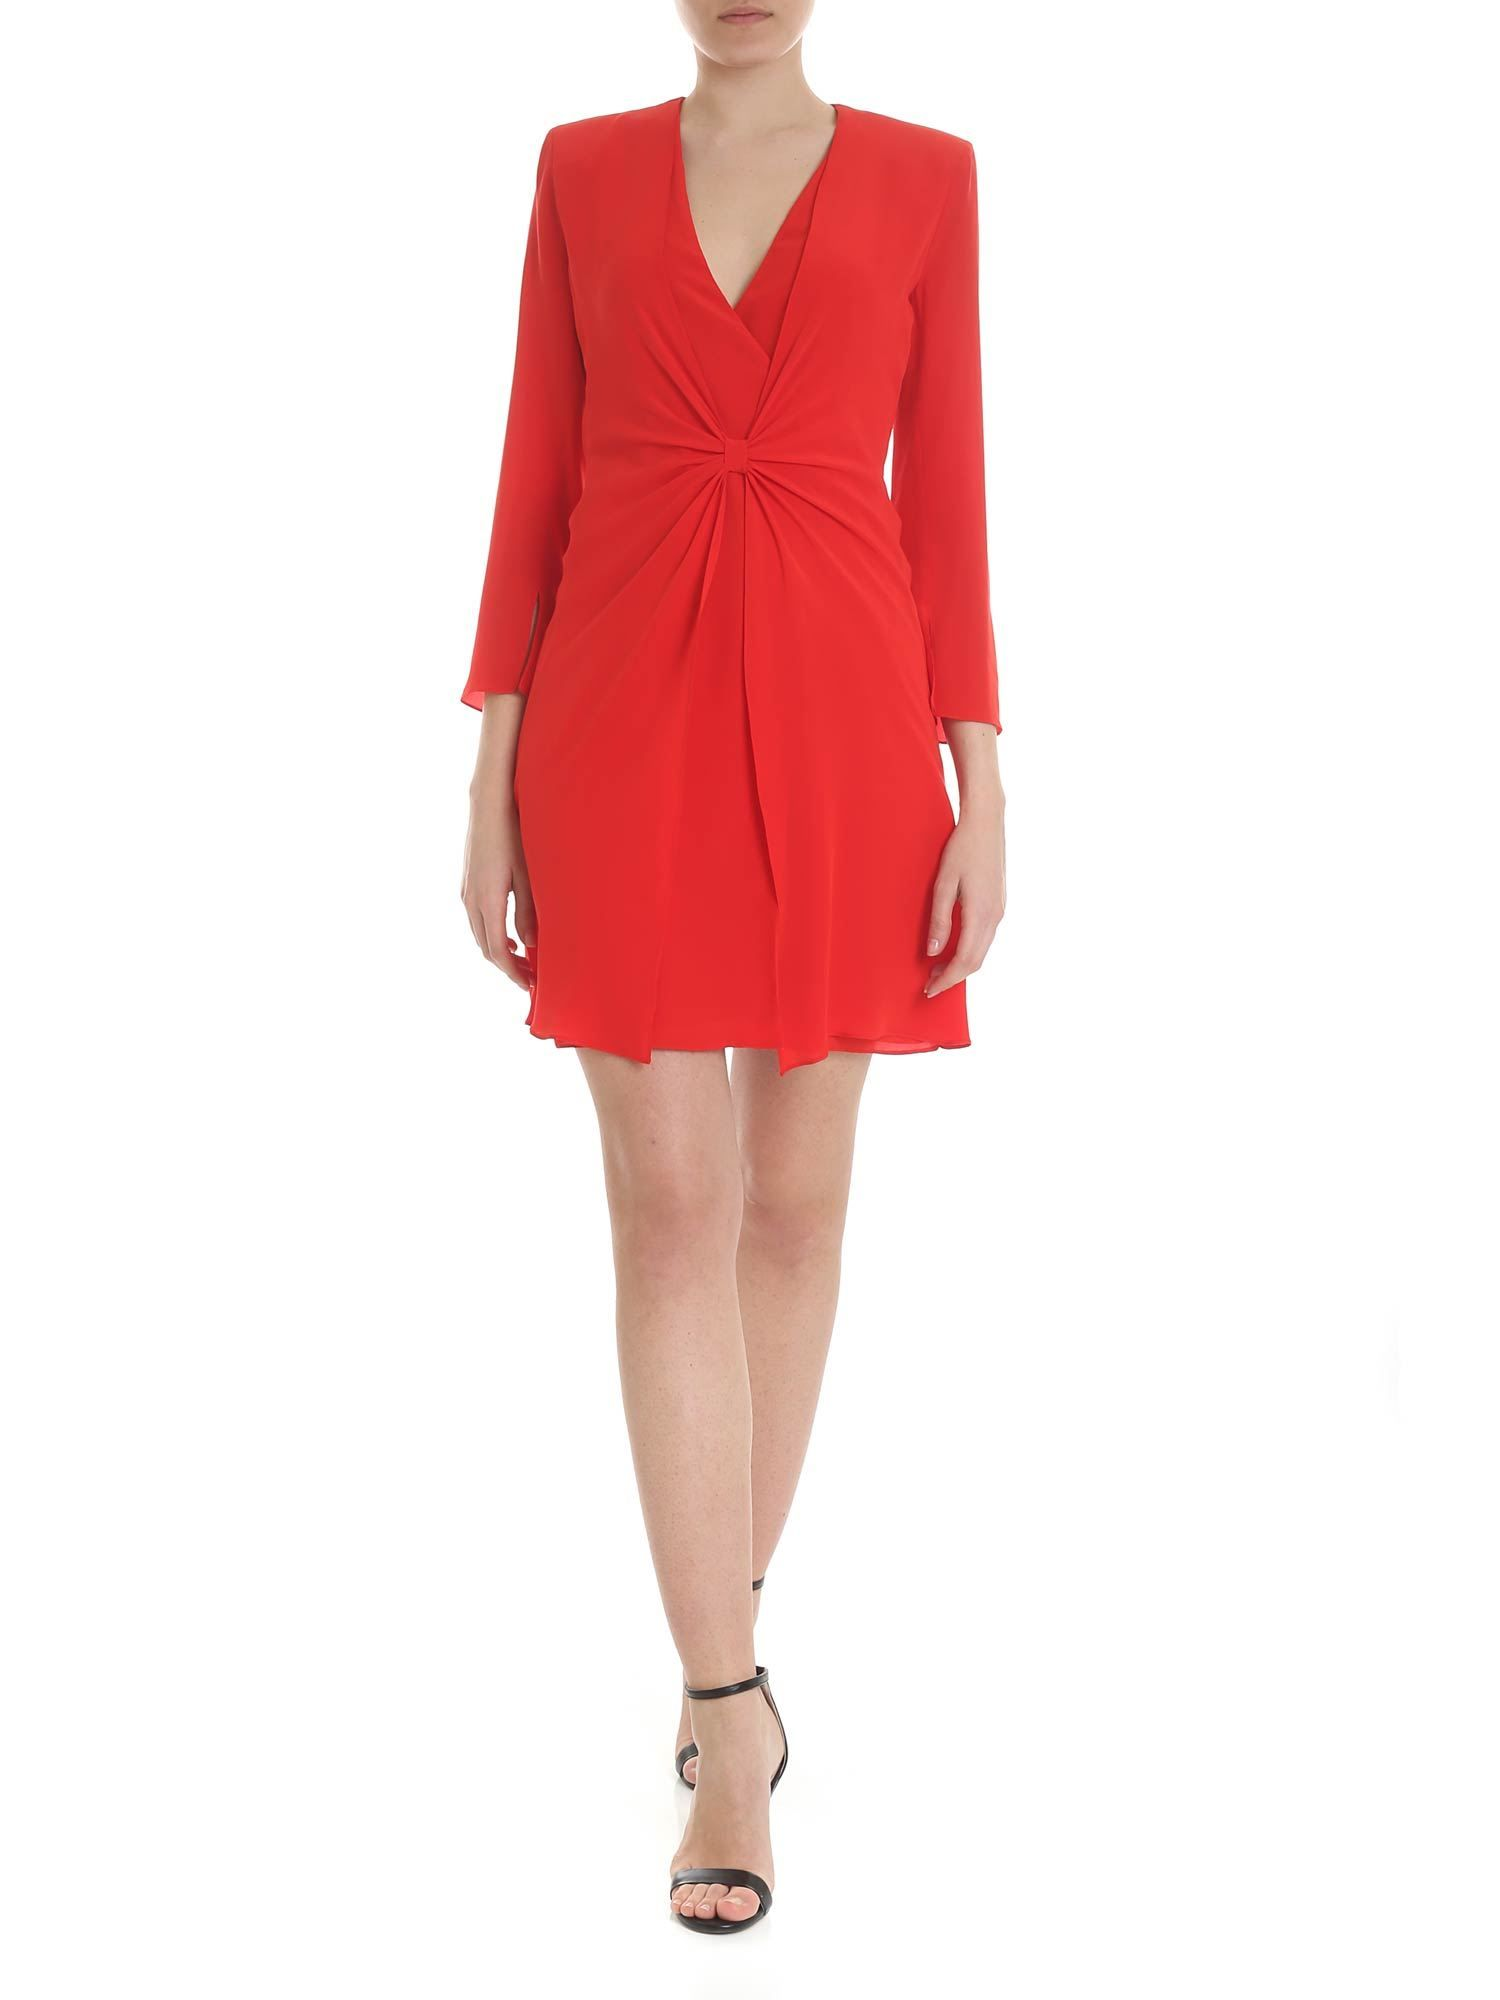 Emporio Armani EMPORIO ARMANI WOMEN'S RED SILK DRESS